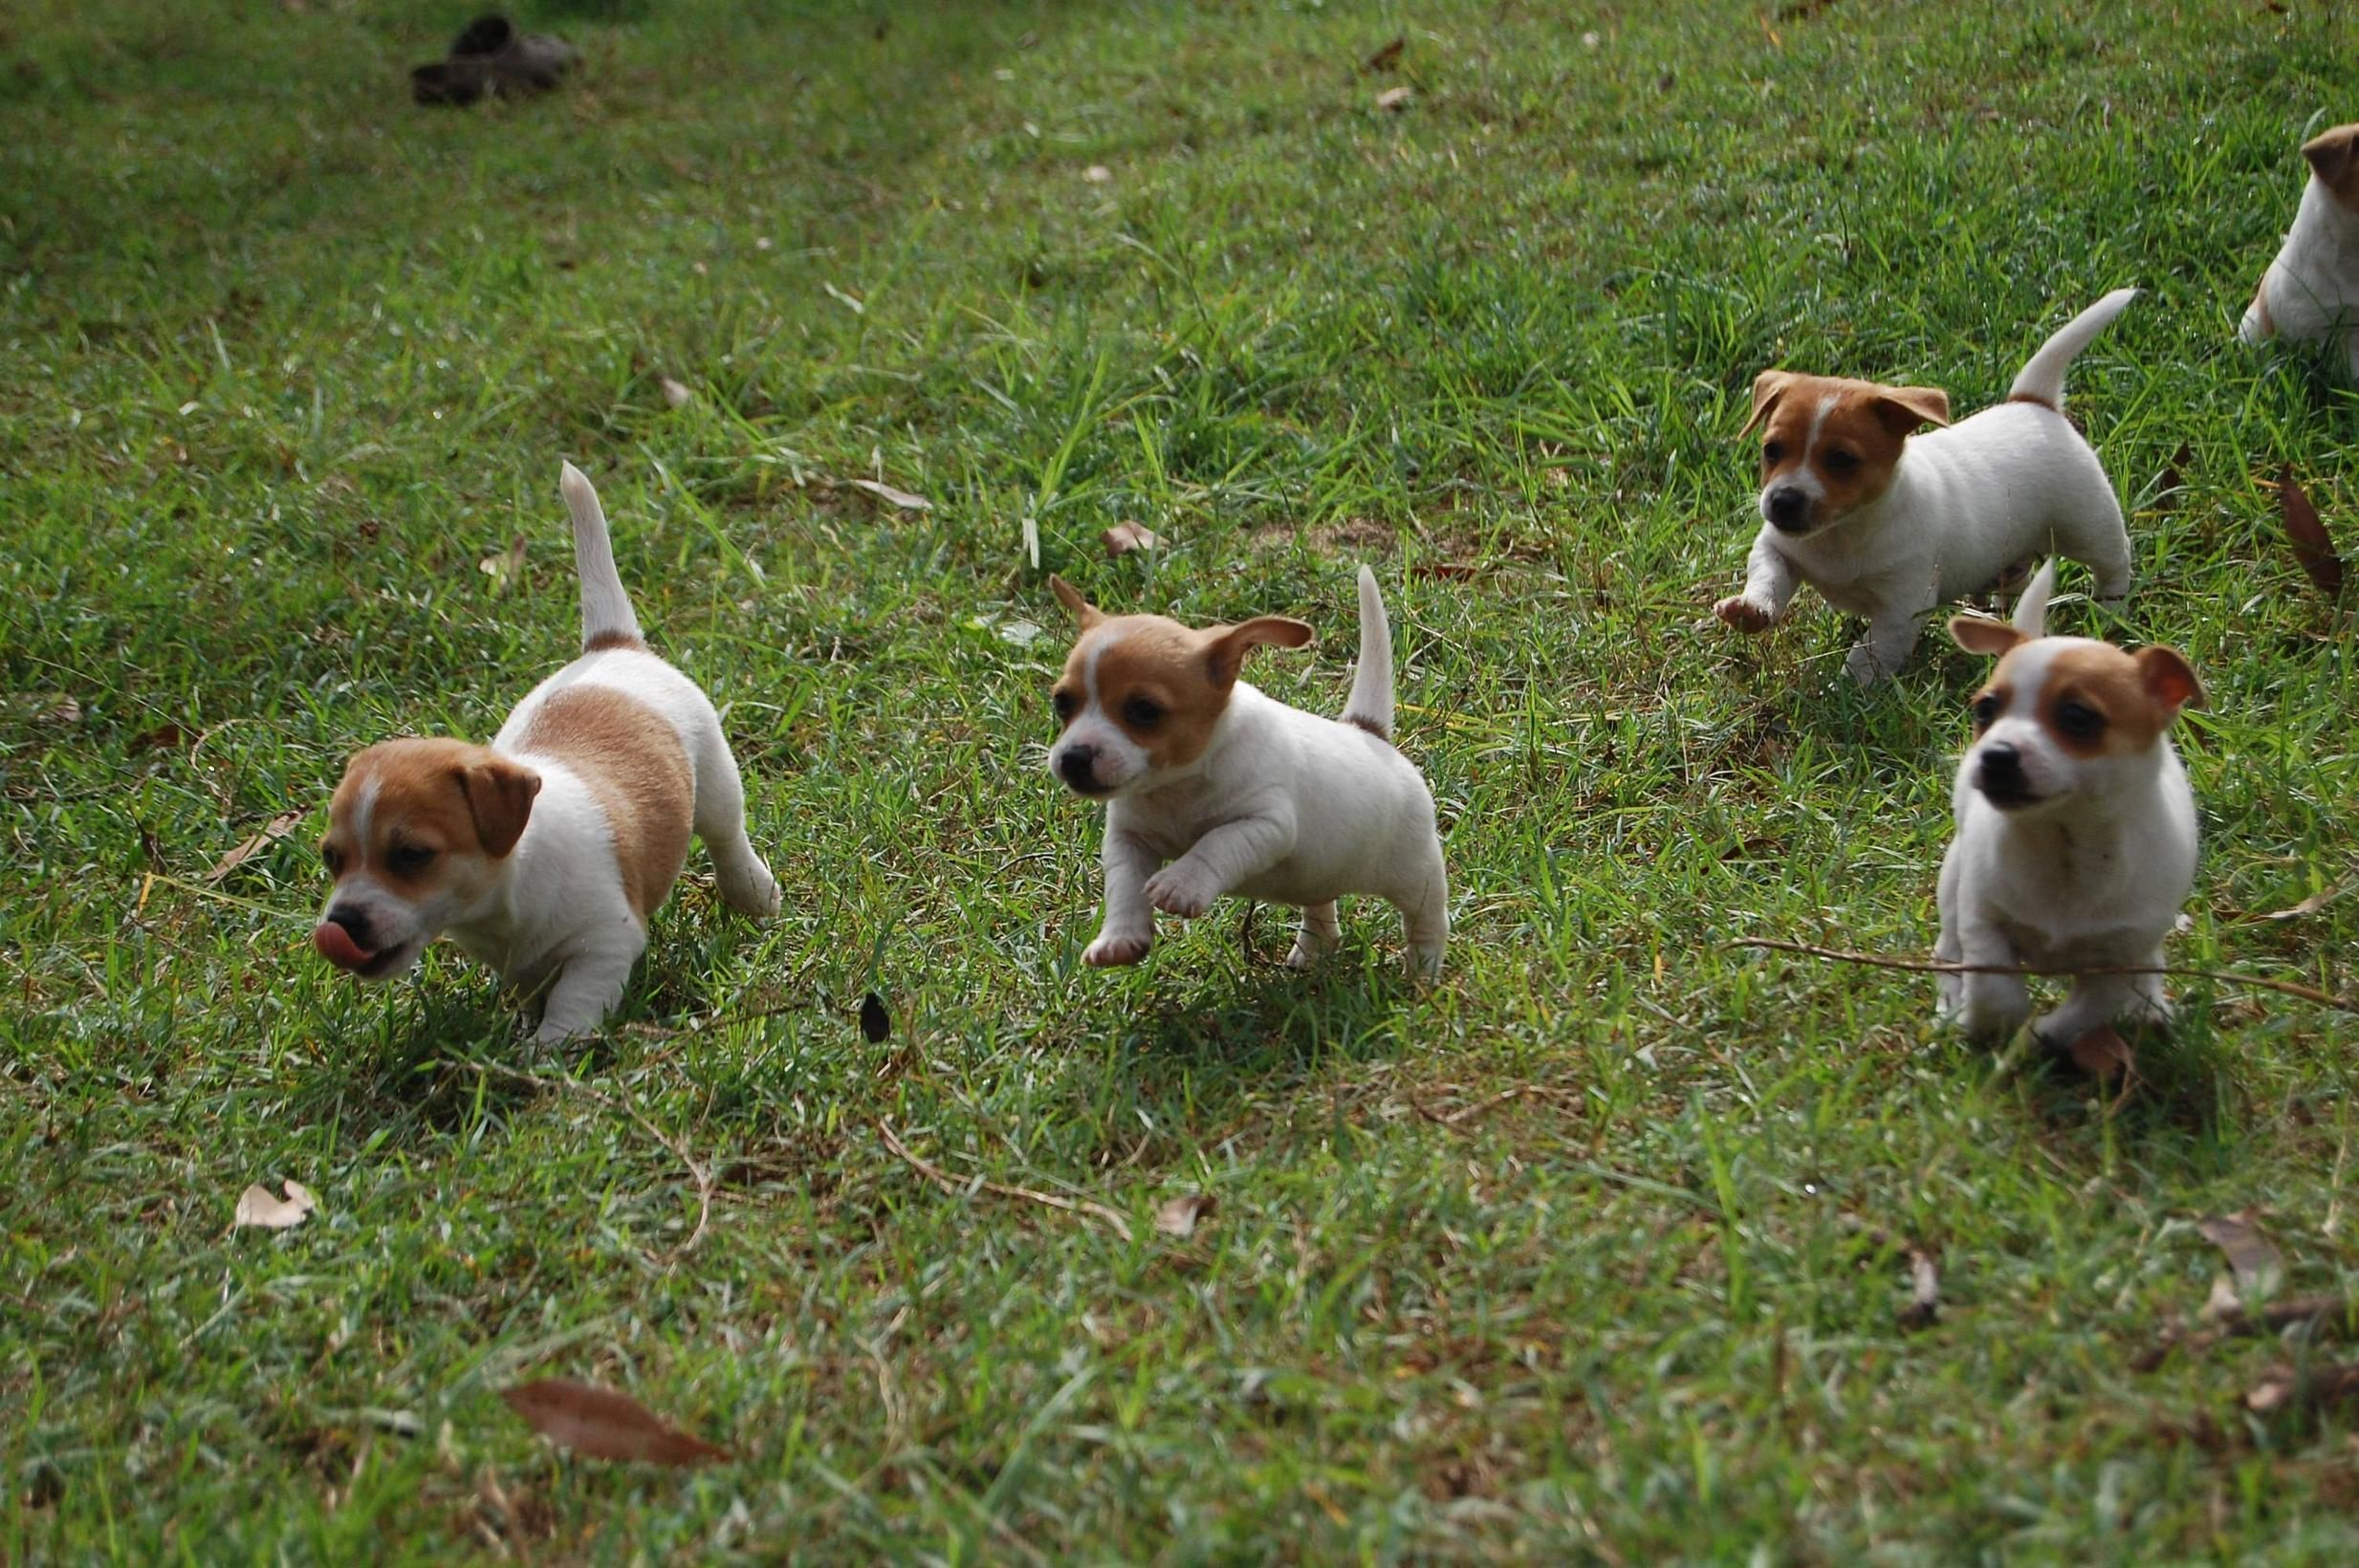 Cute Swarm Cute Animals Cute Puppies Dogs Puppies